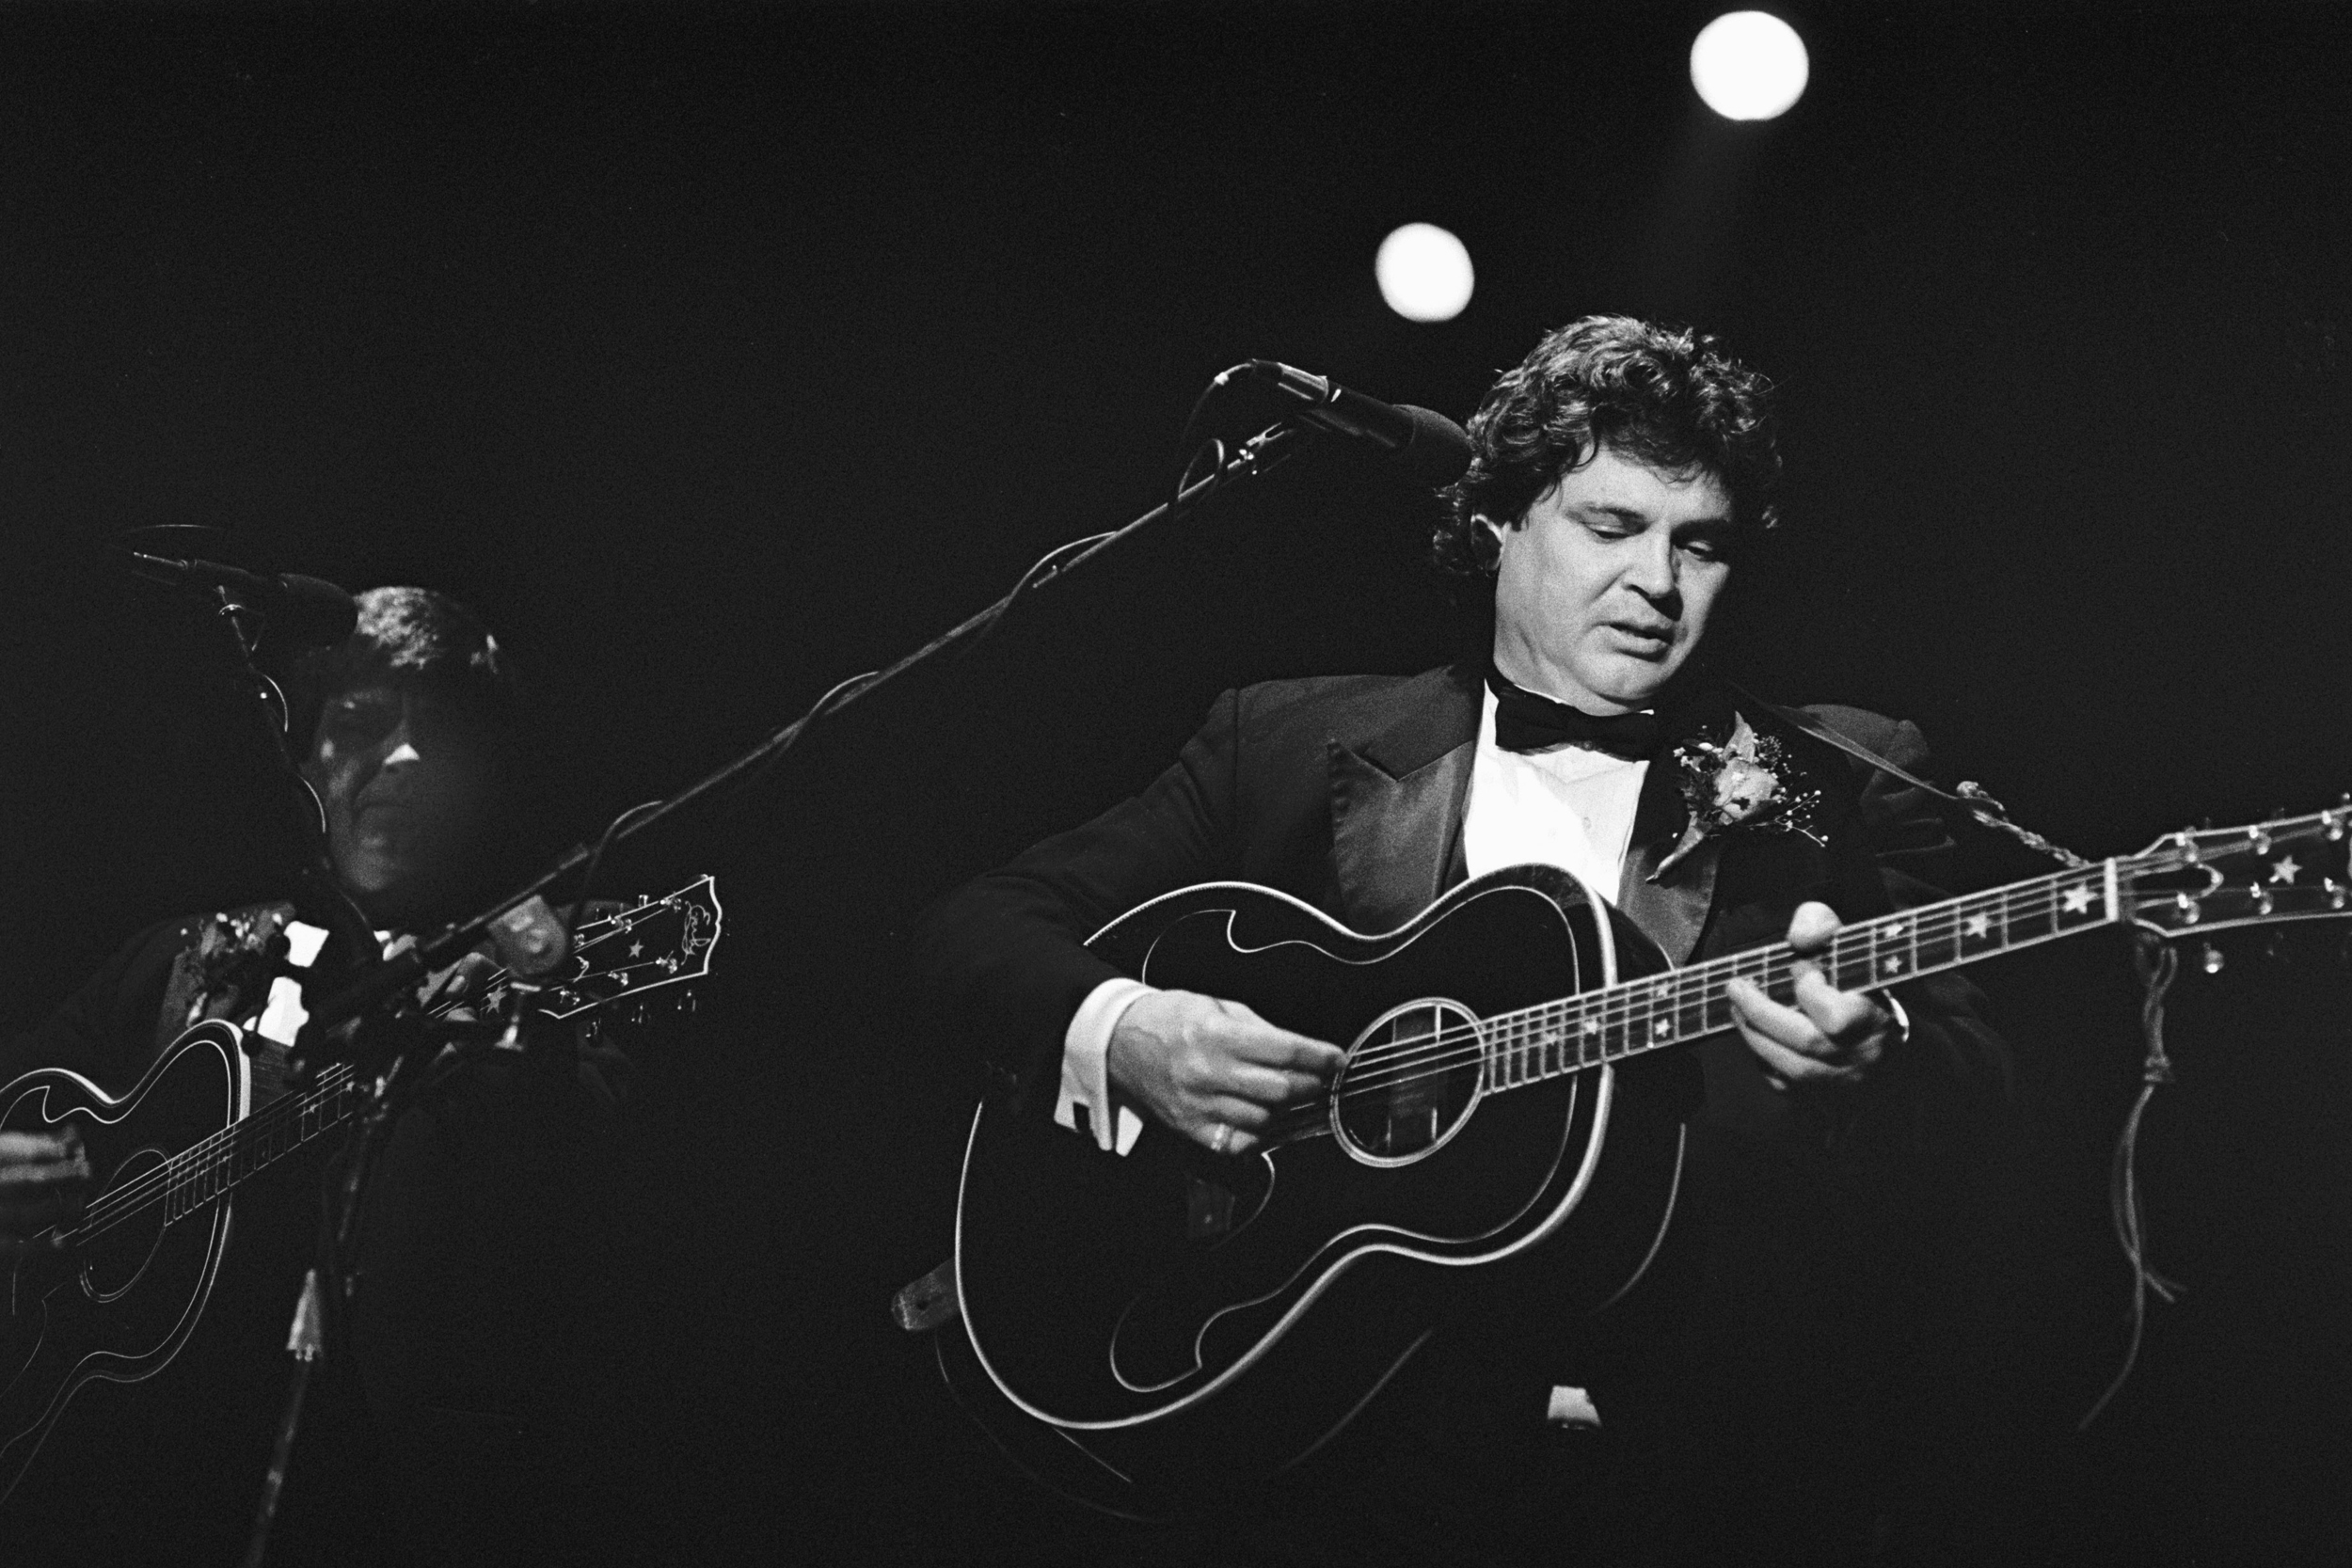 Don Everly, half of the rock 'n' roll Everly Brothers, dies at 84